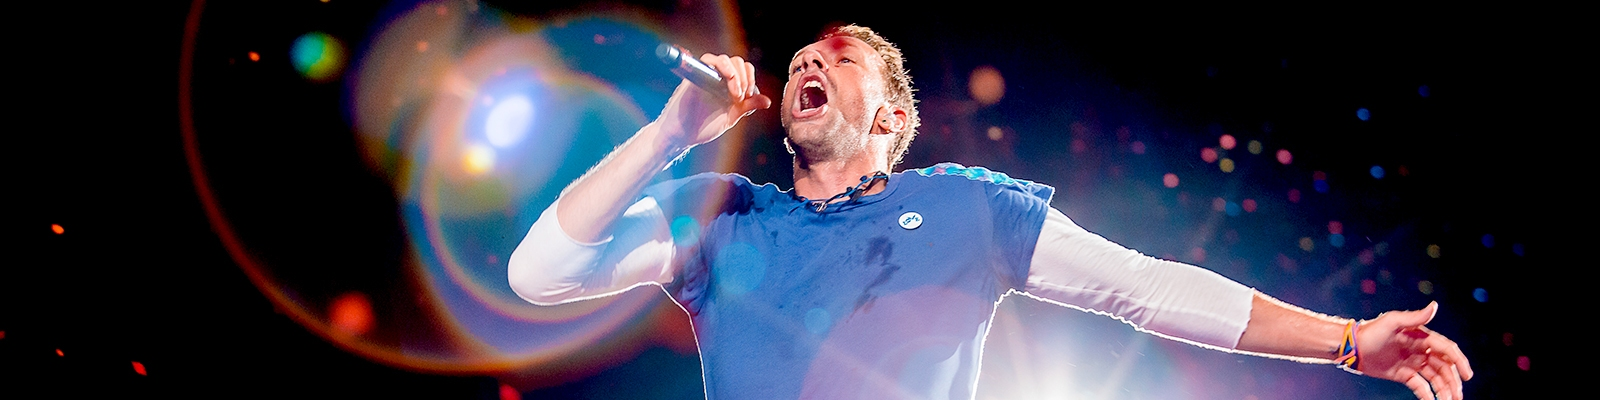 The Best Coldplay Songs Of All Time, Ranked